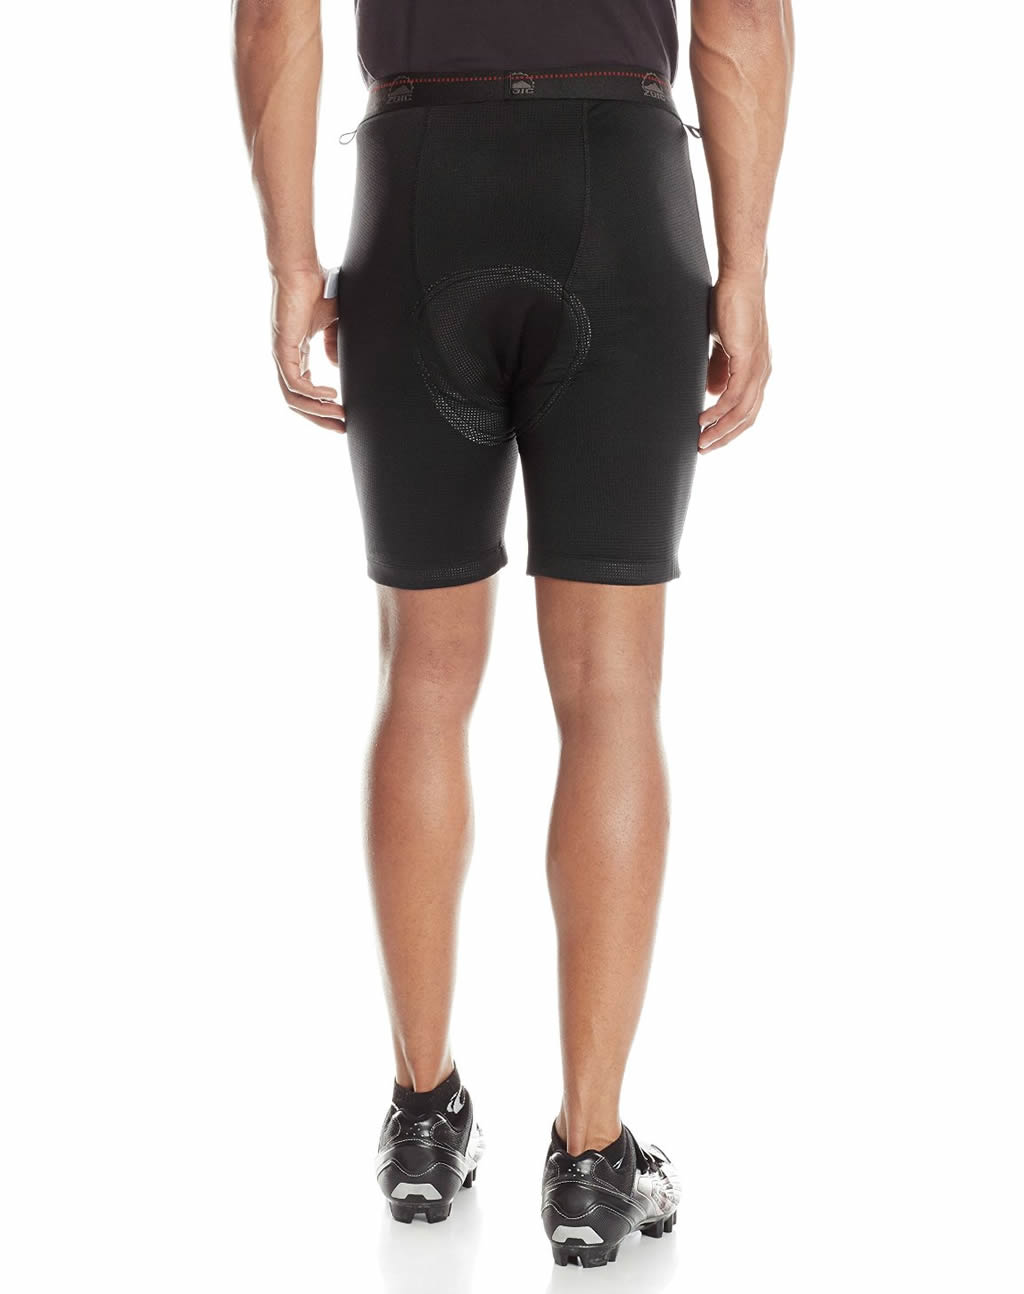 Black ZOICEther Cycling Shorts for men, Back